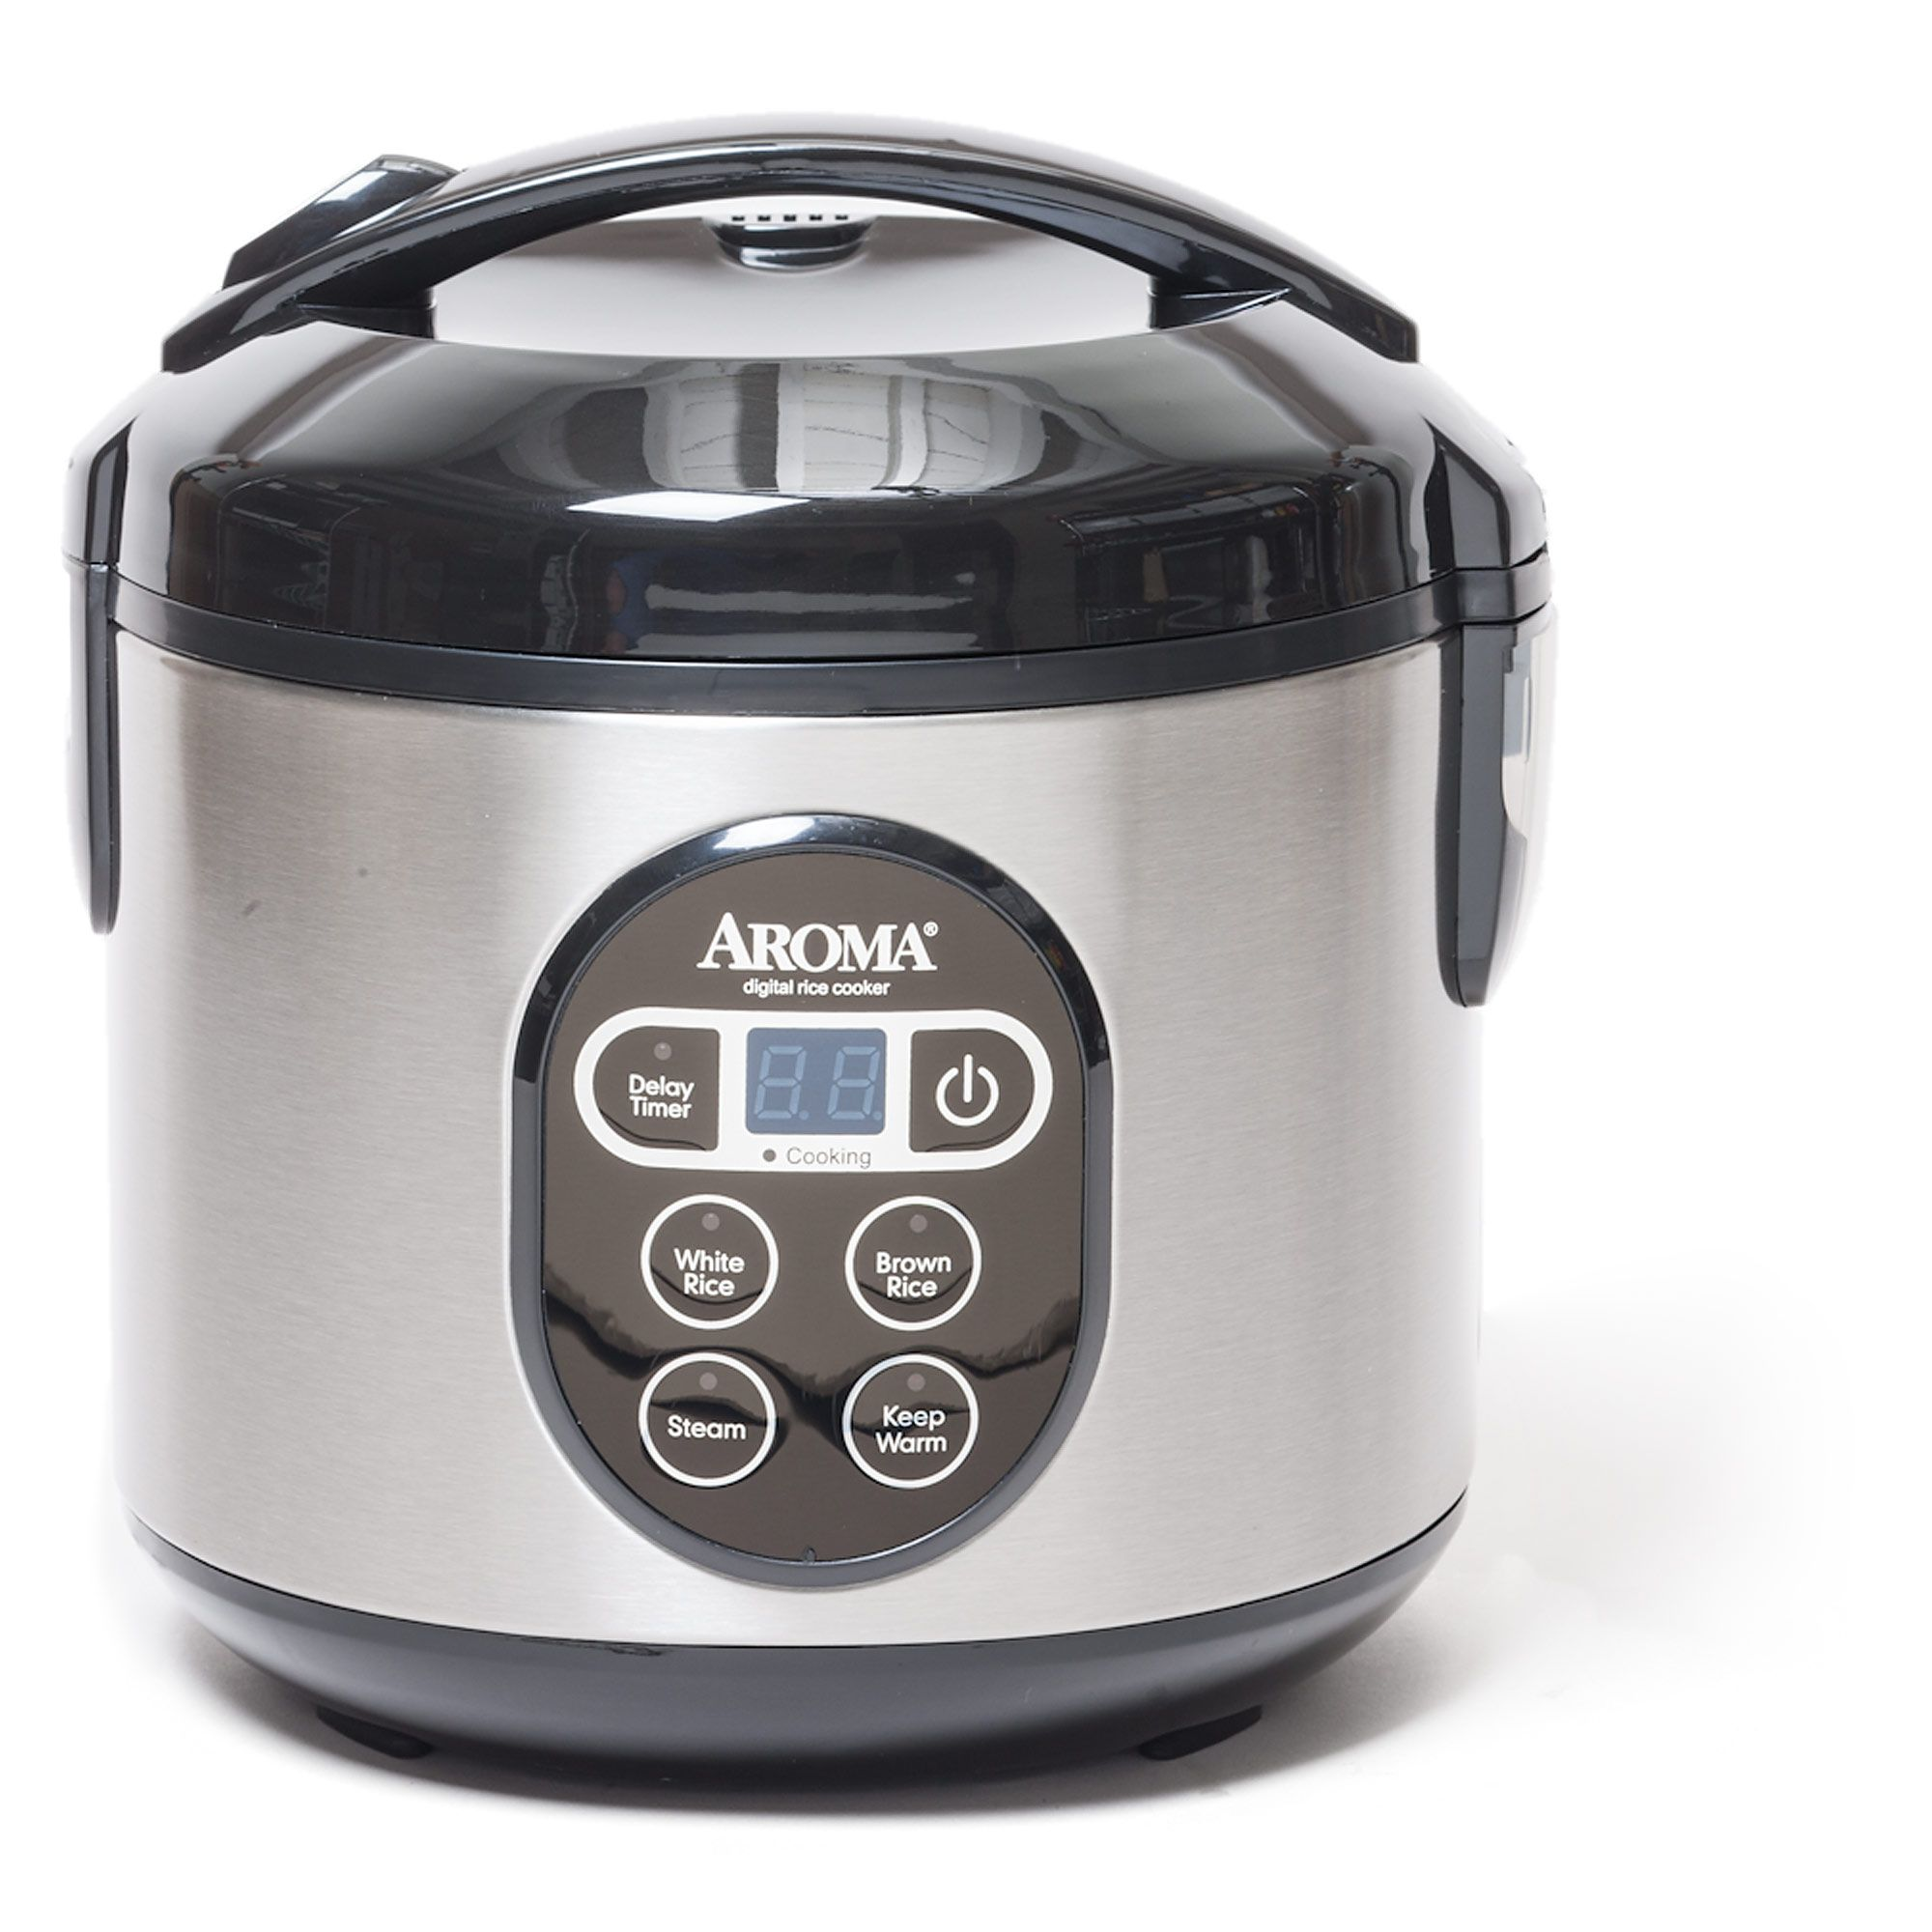 A good rice cooker should make the task of cooking rice convenient and  foolproof. We